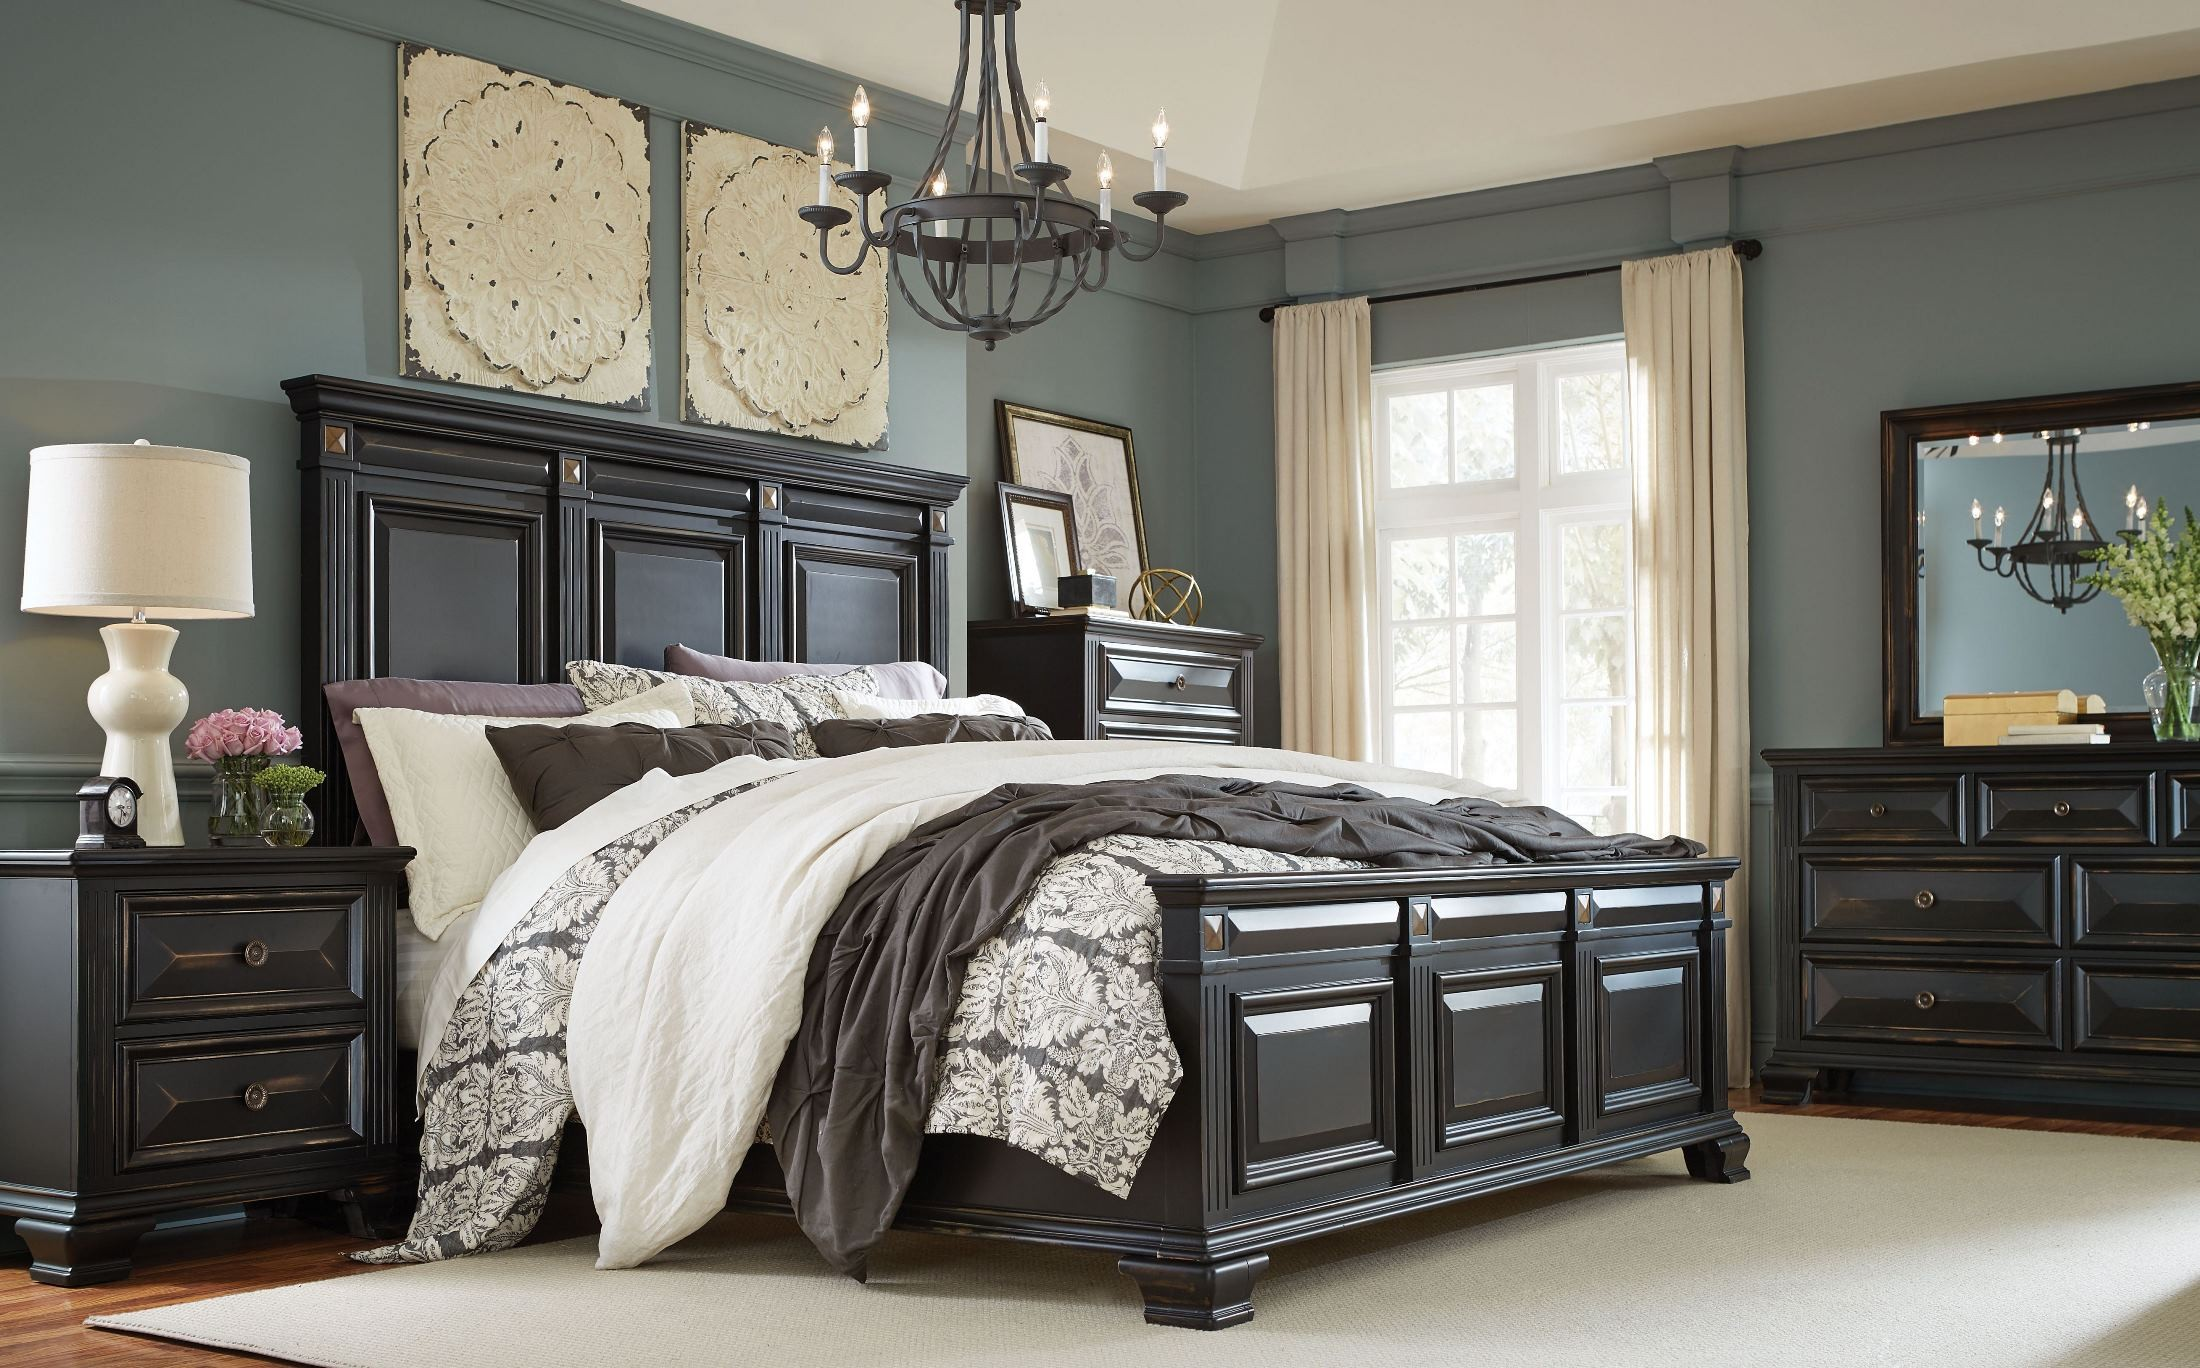 Passages Vintage Black Panel Bedroom Set 86901 86902 86903 Standard Furniture